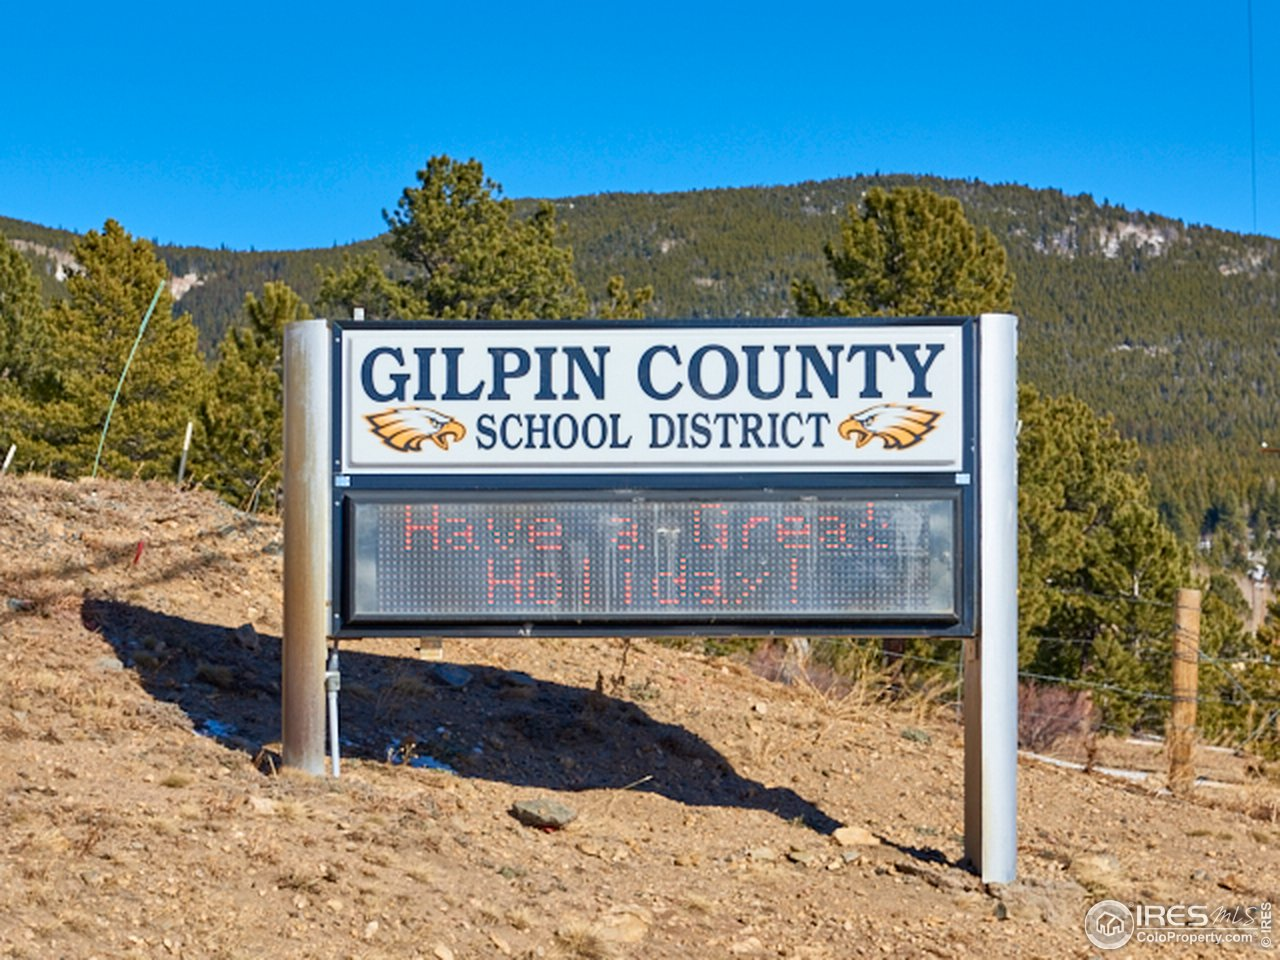 Gilpin County School District